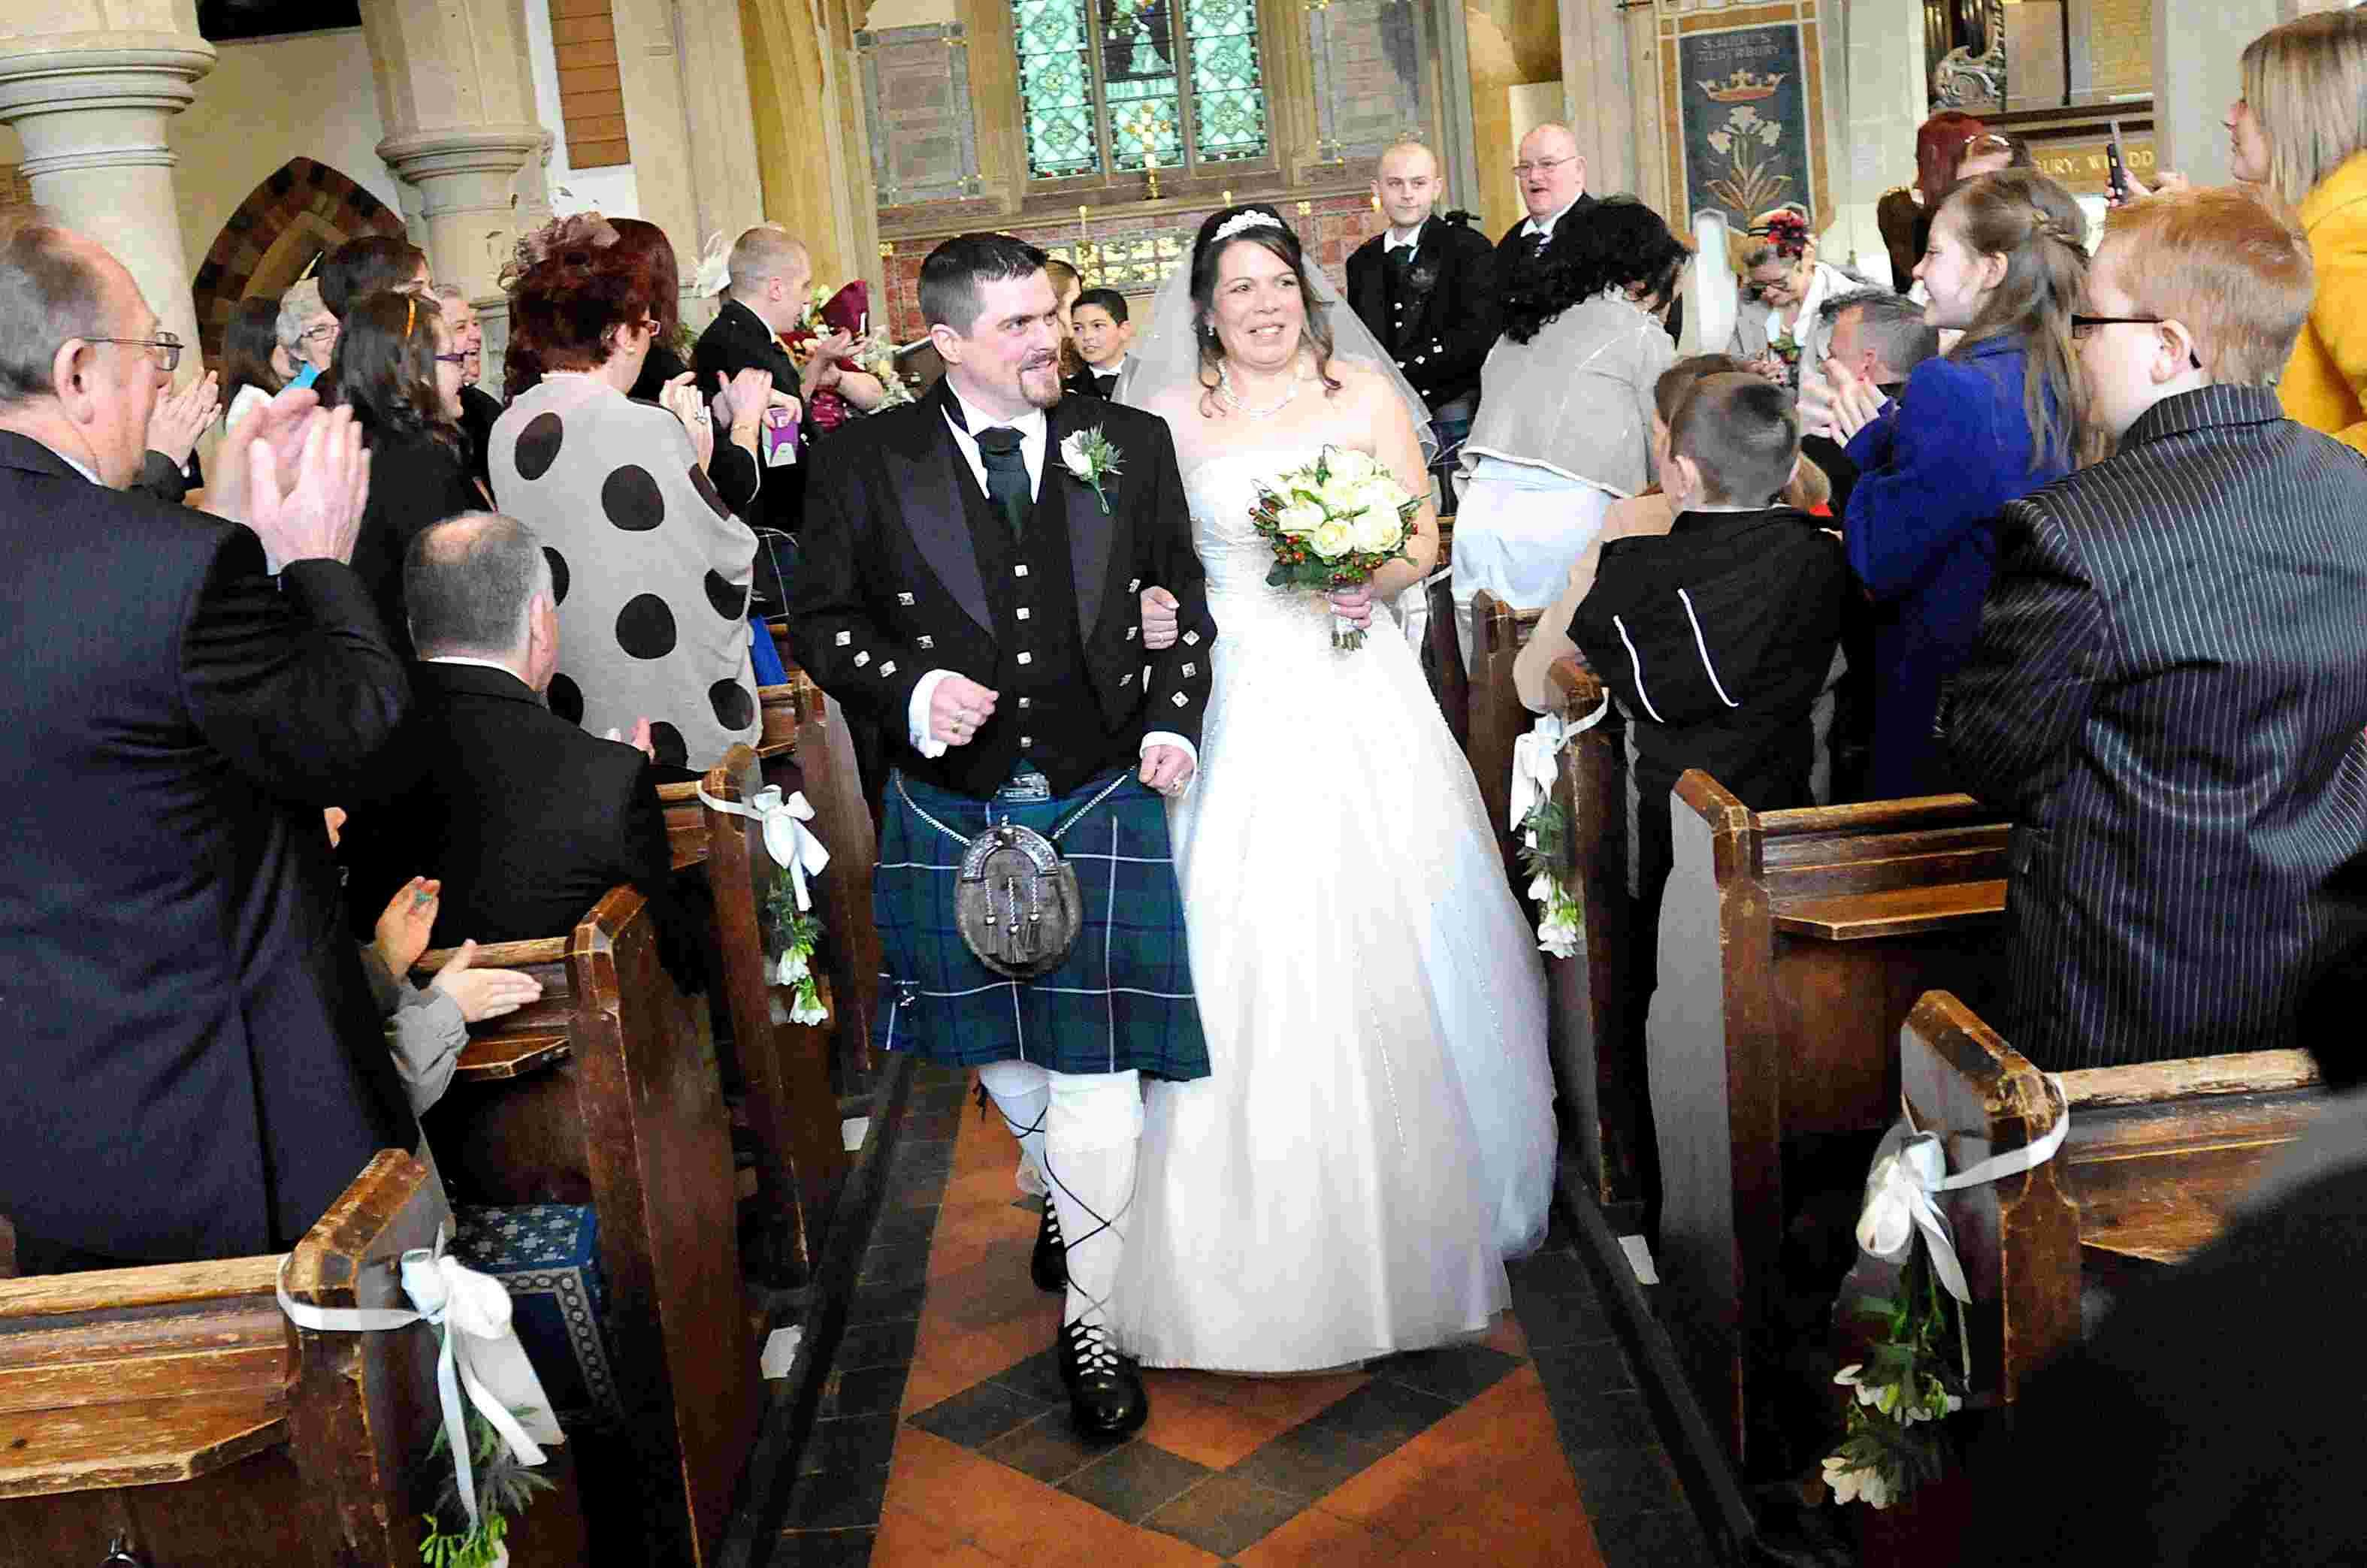 Competition Winners have Valentine's Day Wedding